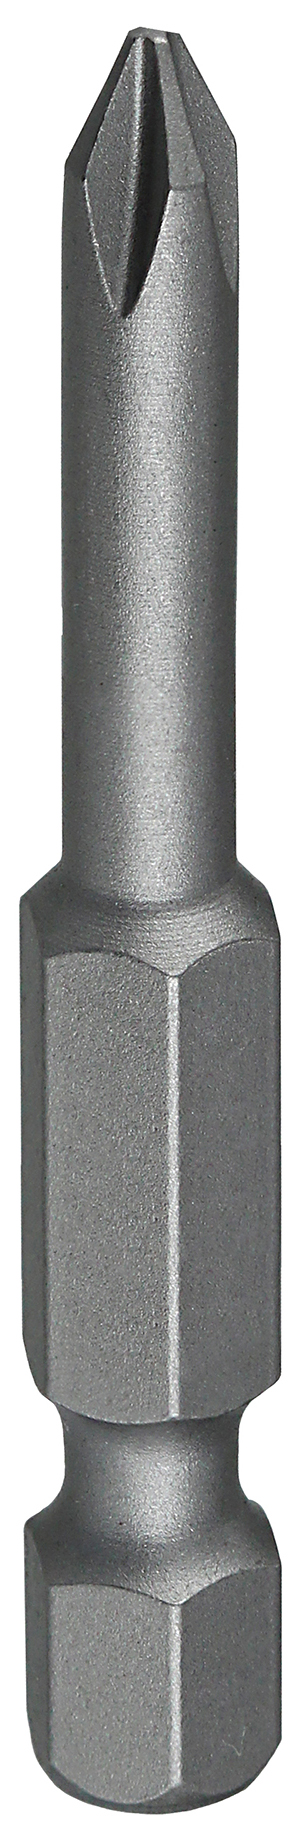 3//8-Inch by 1-3//4-Inch Drive Dottie MT38 Magnetic Hex Tool 1//4-Inch Screw L.H